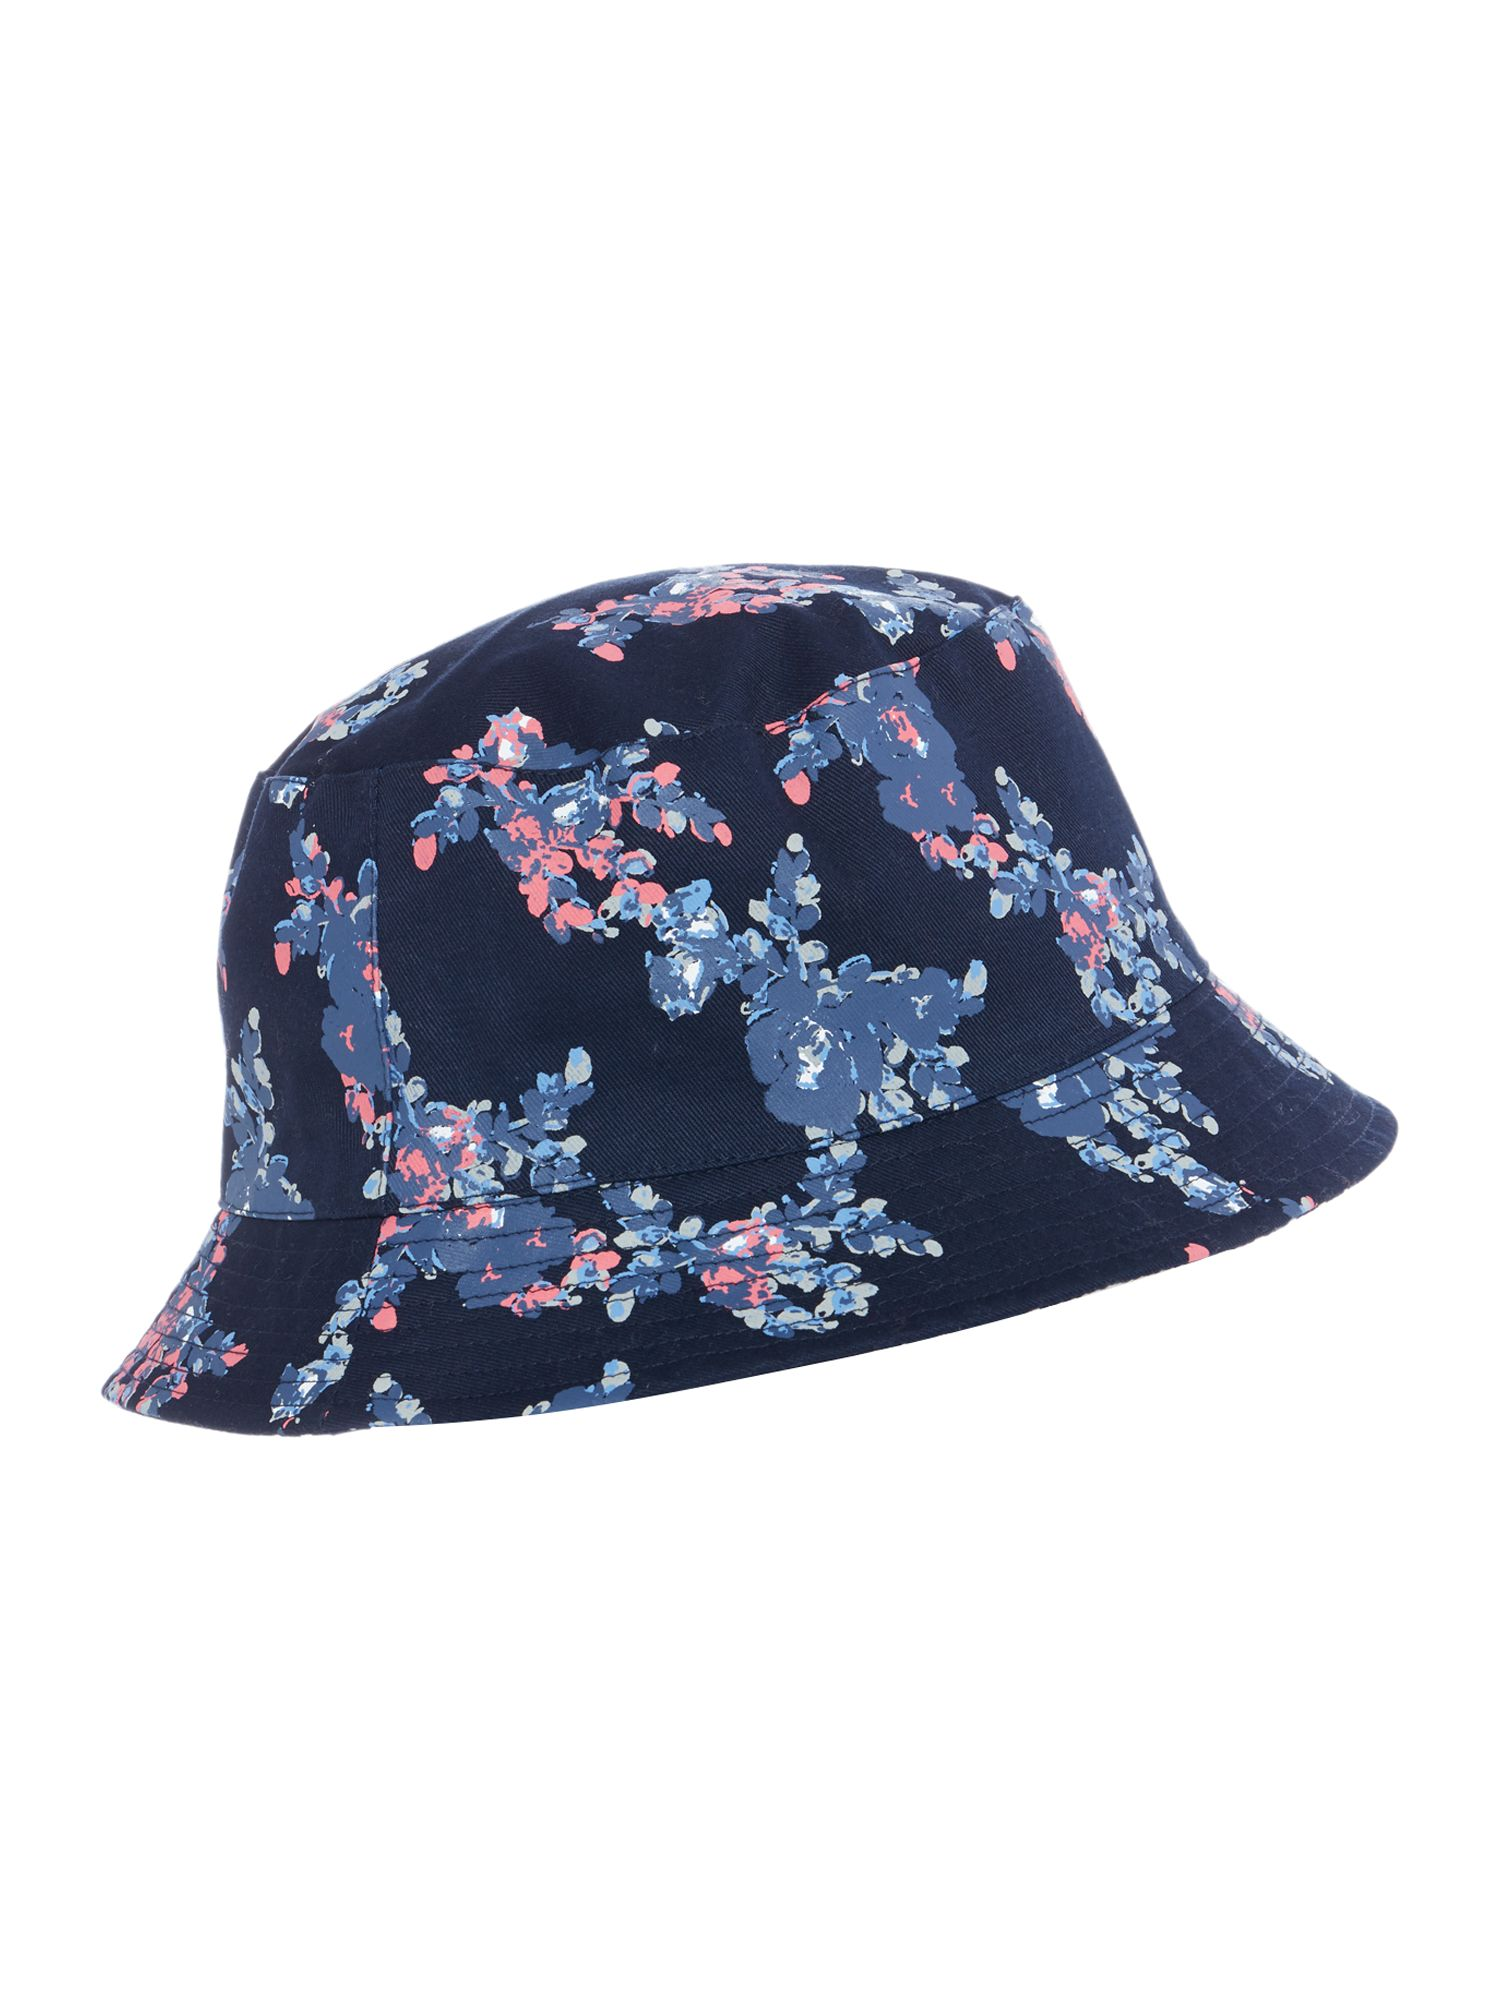 Dickins & Jones Danity Reversible Bucket Hat, Blue